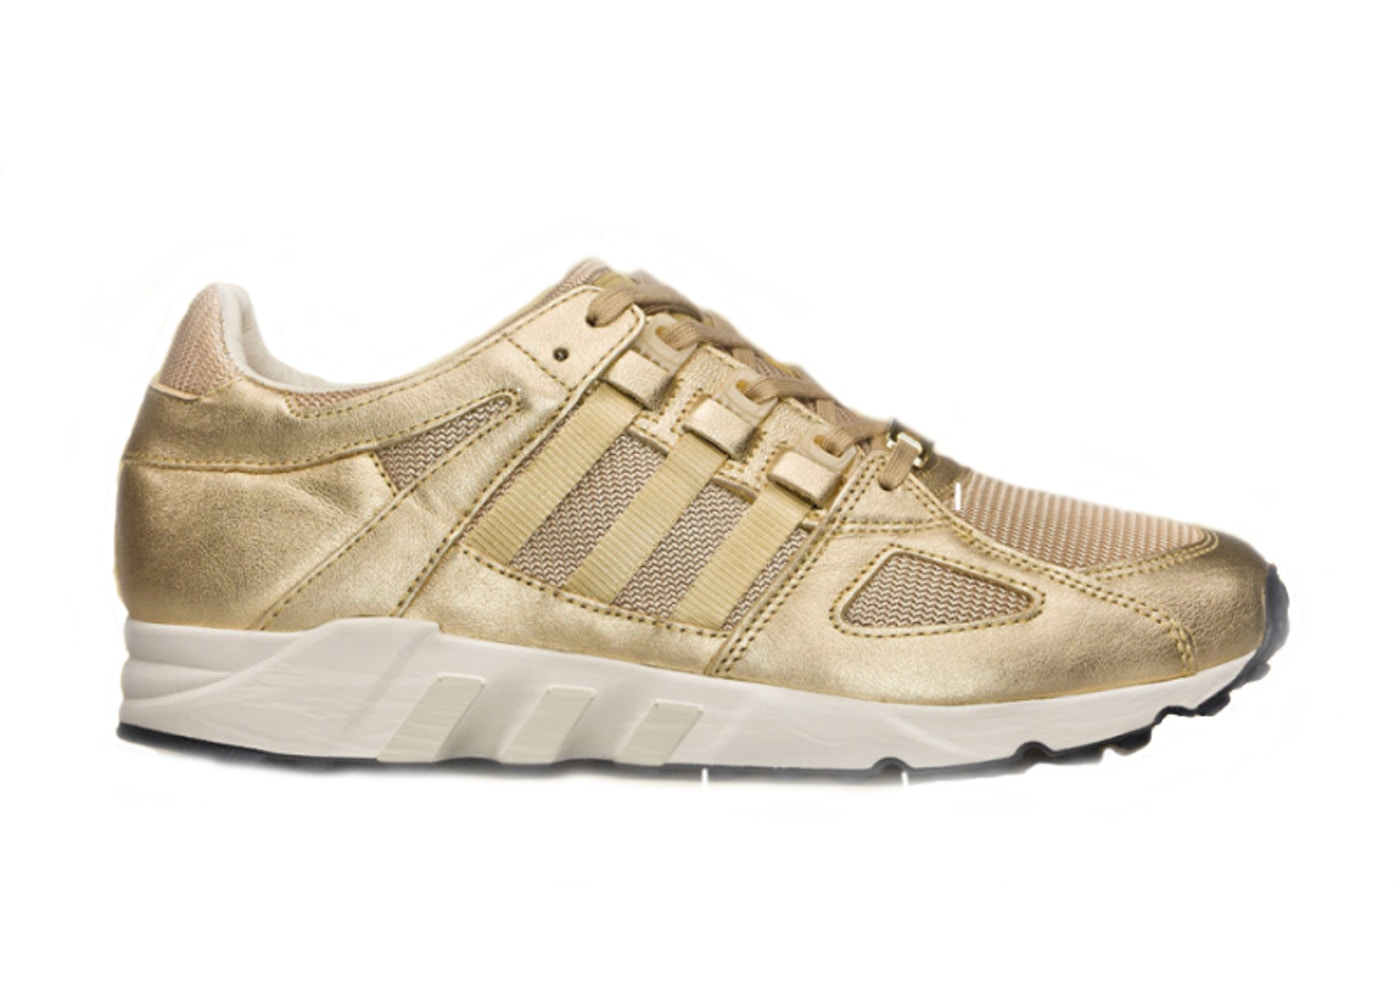 first rate da87f a07c6 Sell. or Ask. Size --. View All Bids. adidas EQT Guidance Sneakersnstuff